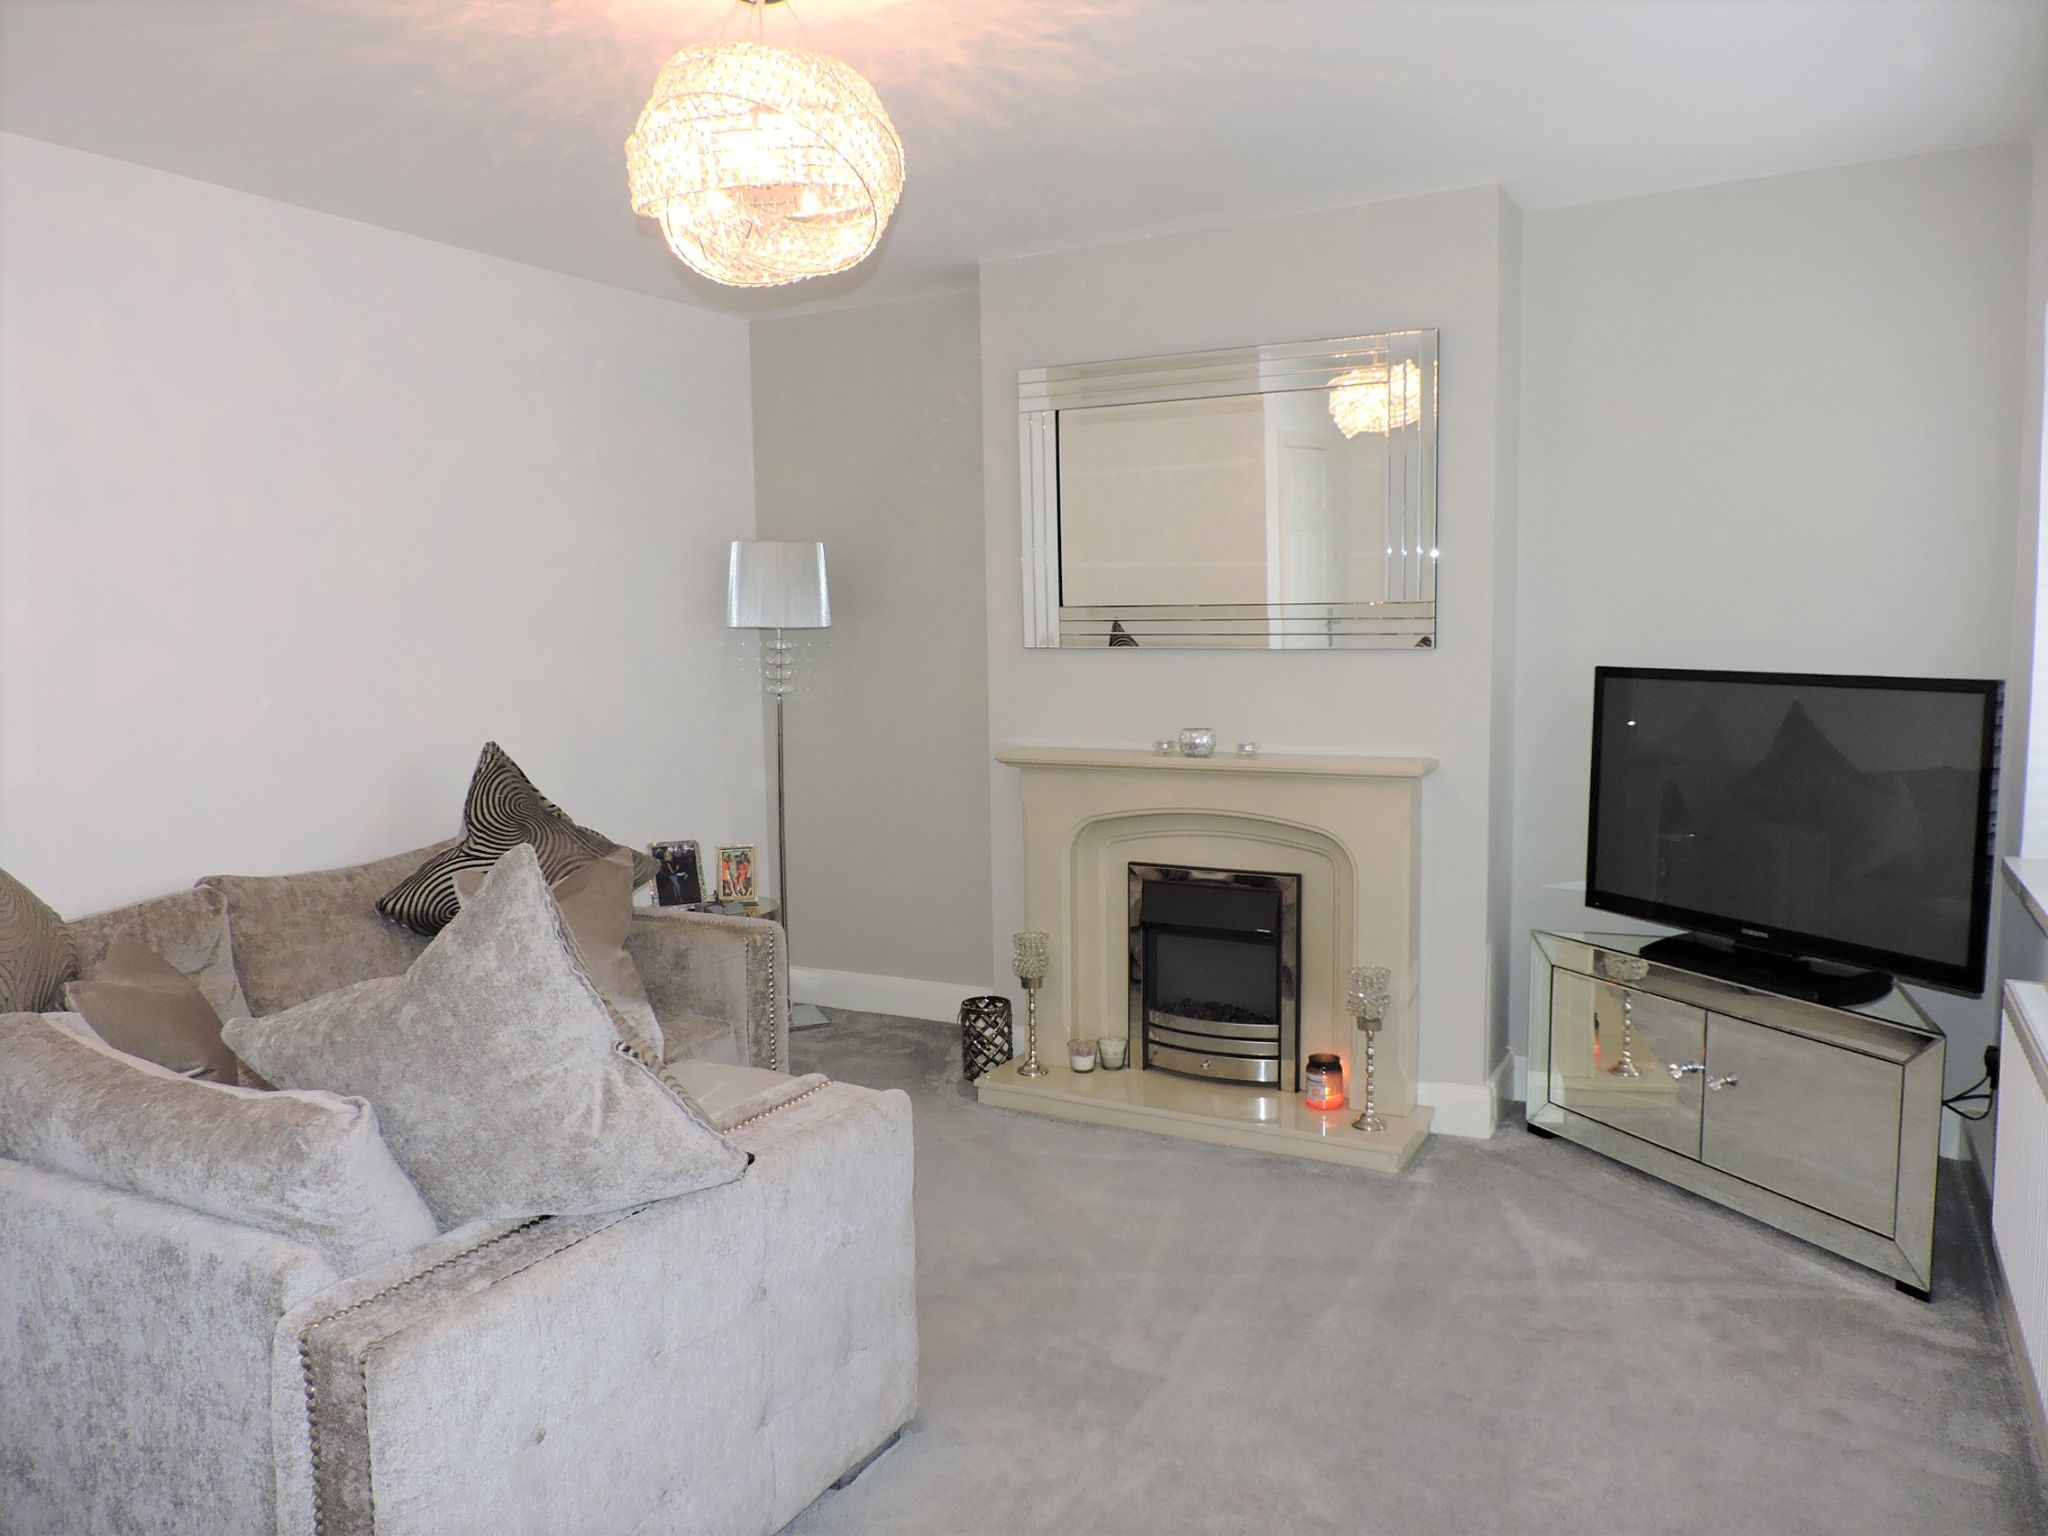 2 bedroom flat flat/apartment Sale Agreed in Epsom - Photograph 3